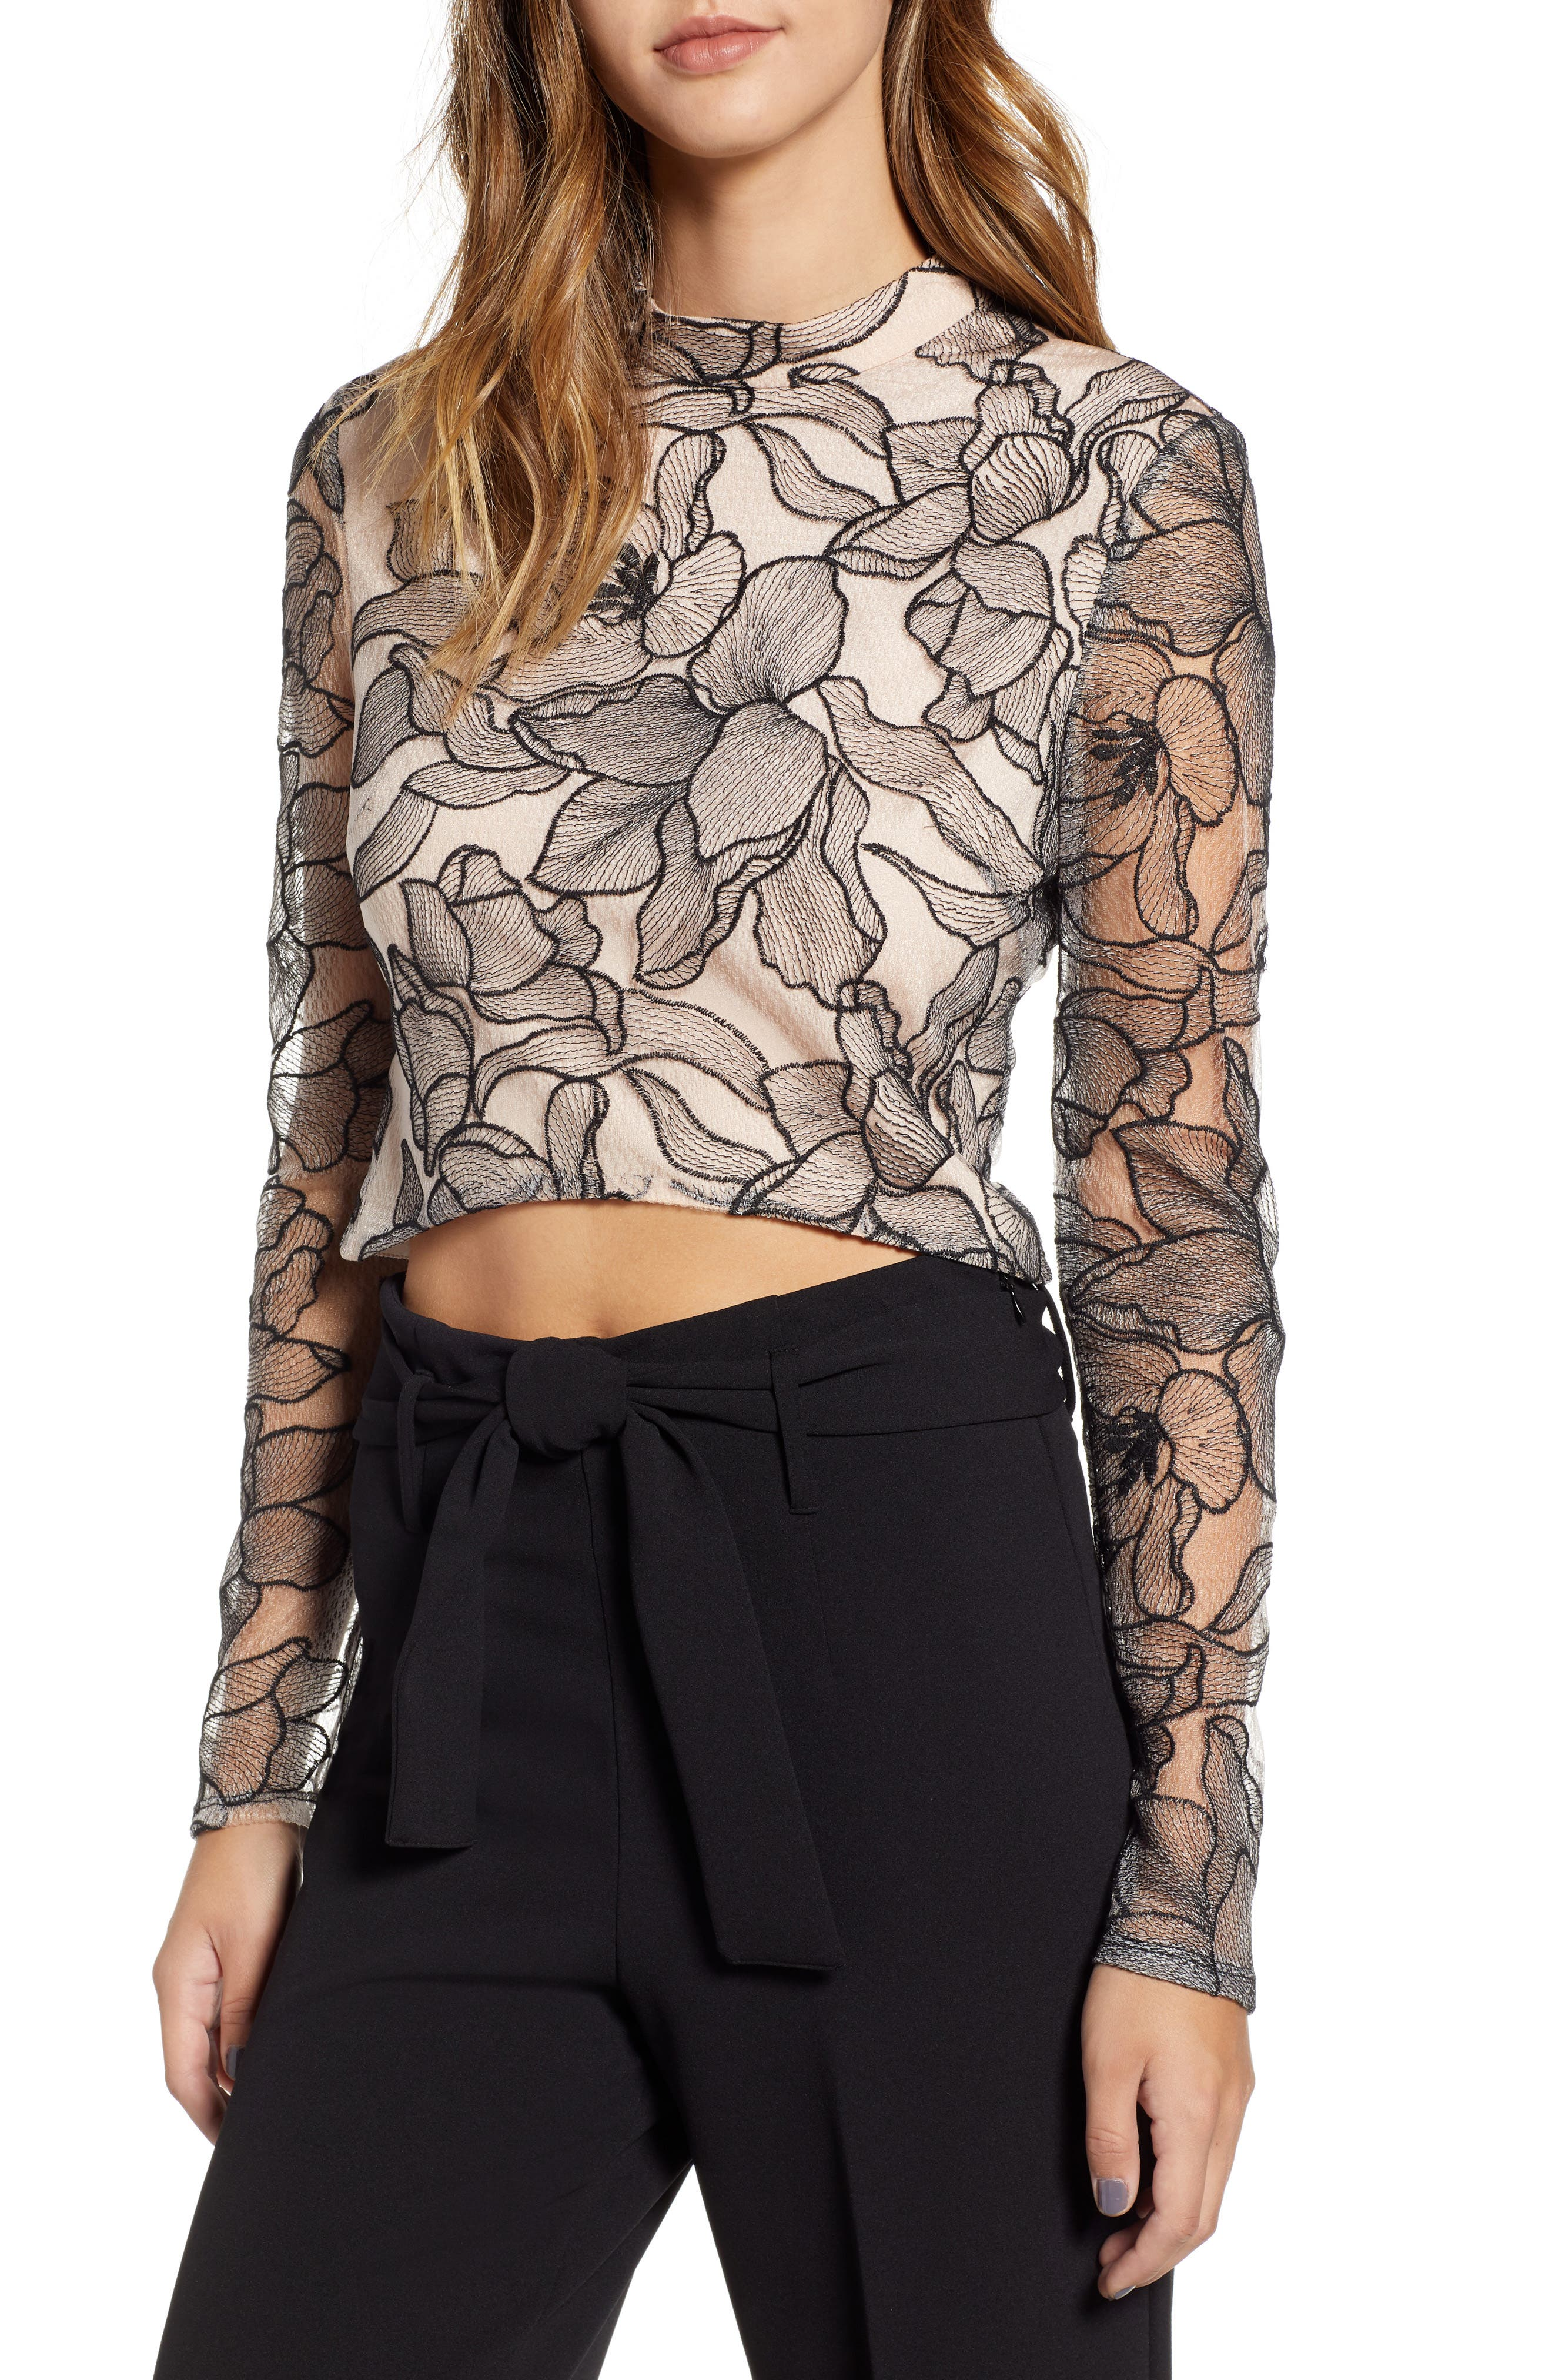 Mina Cropped Lace Top,                             Main thumbnail 1, color,                             BLACK NUDE LACE